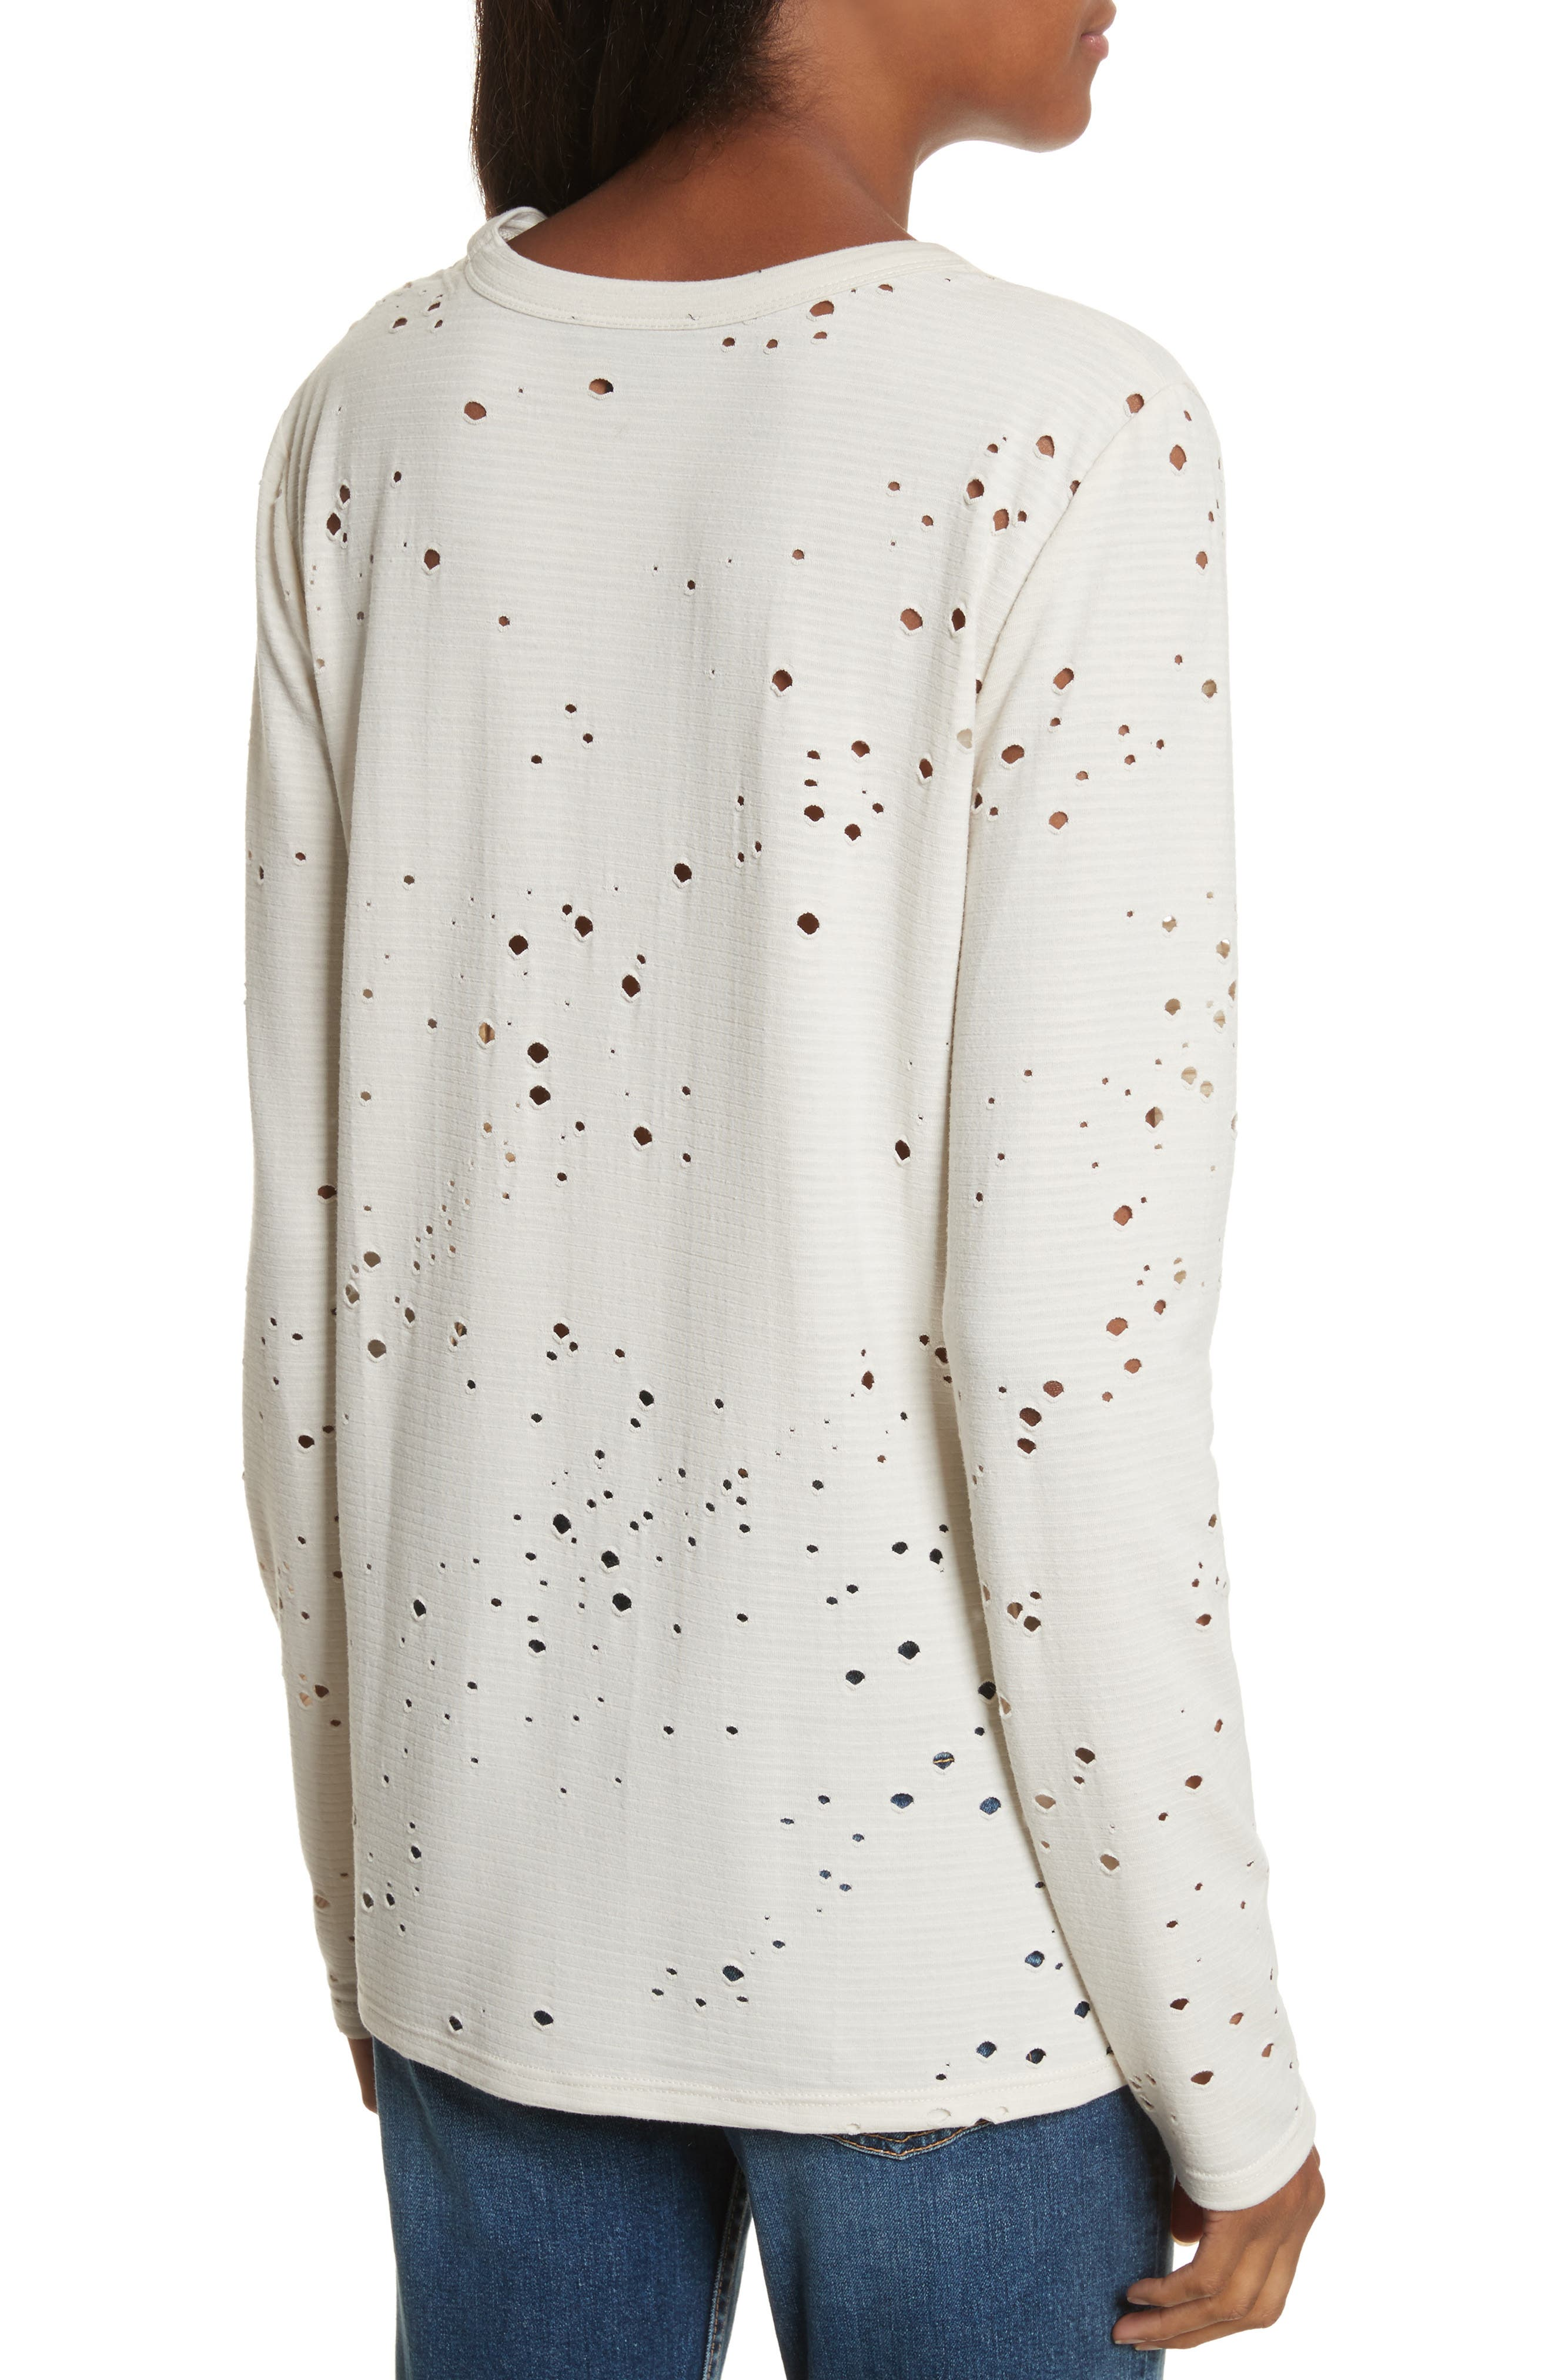 Waverly Perforated Tee,                             Alternate thumbnail 2, color,                             Eggshell